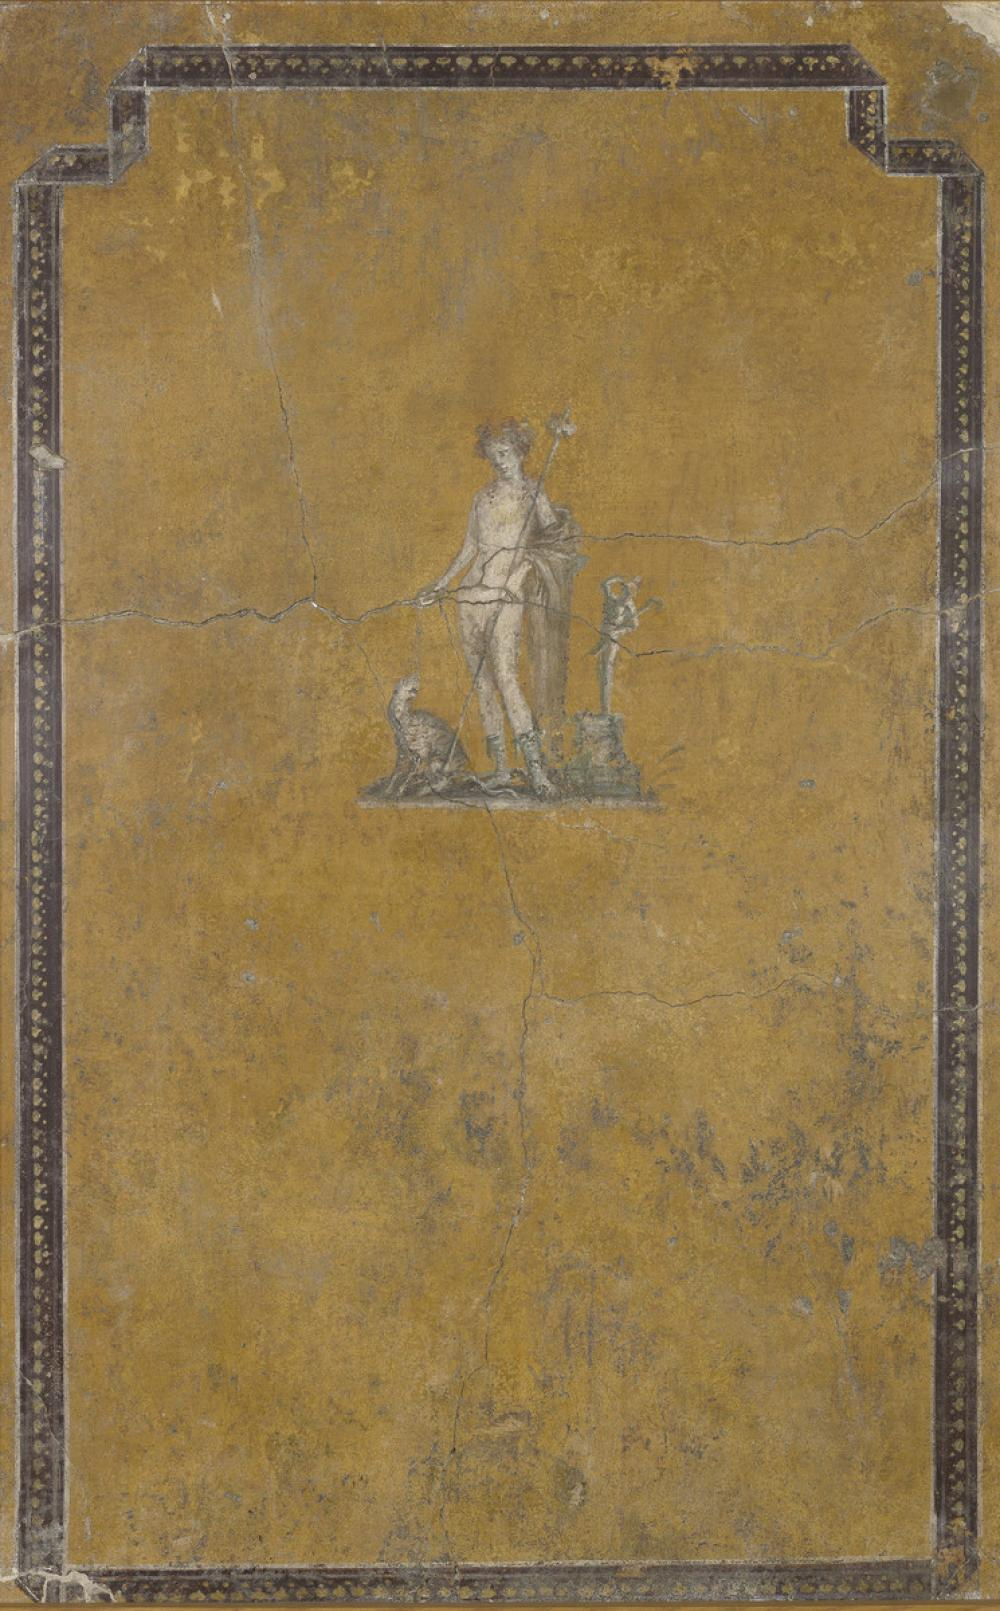 Roman, Fragment of a wall painting with Bacchus